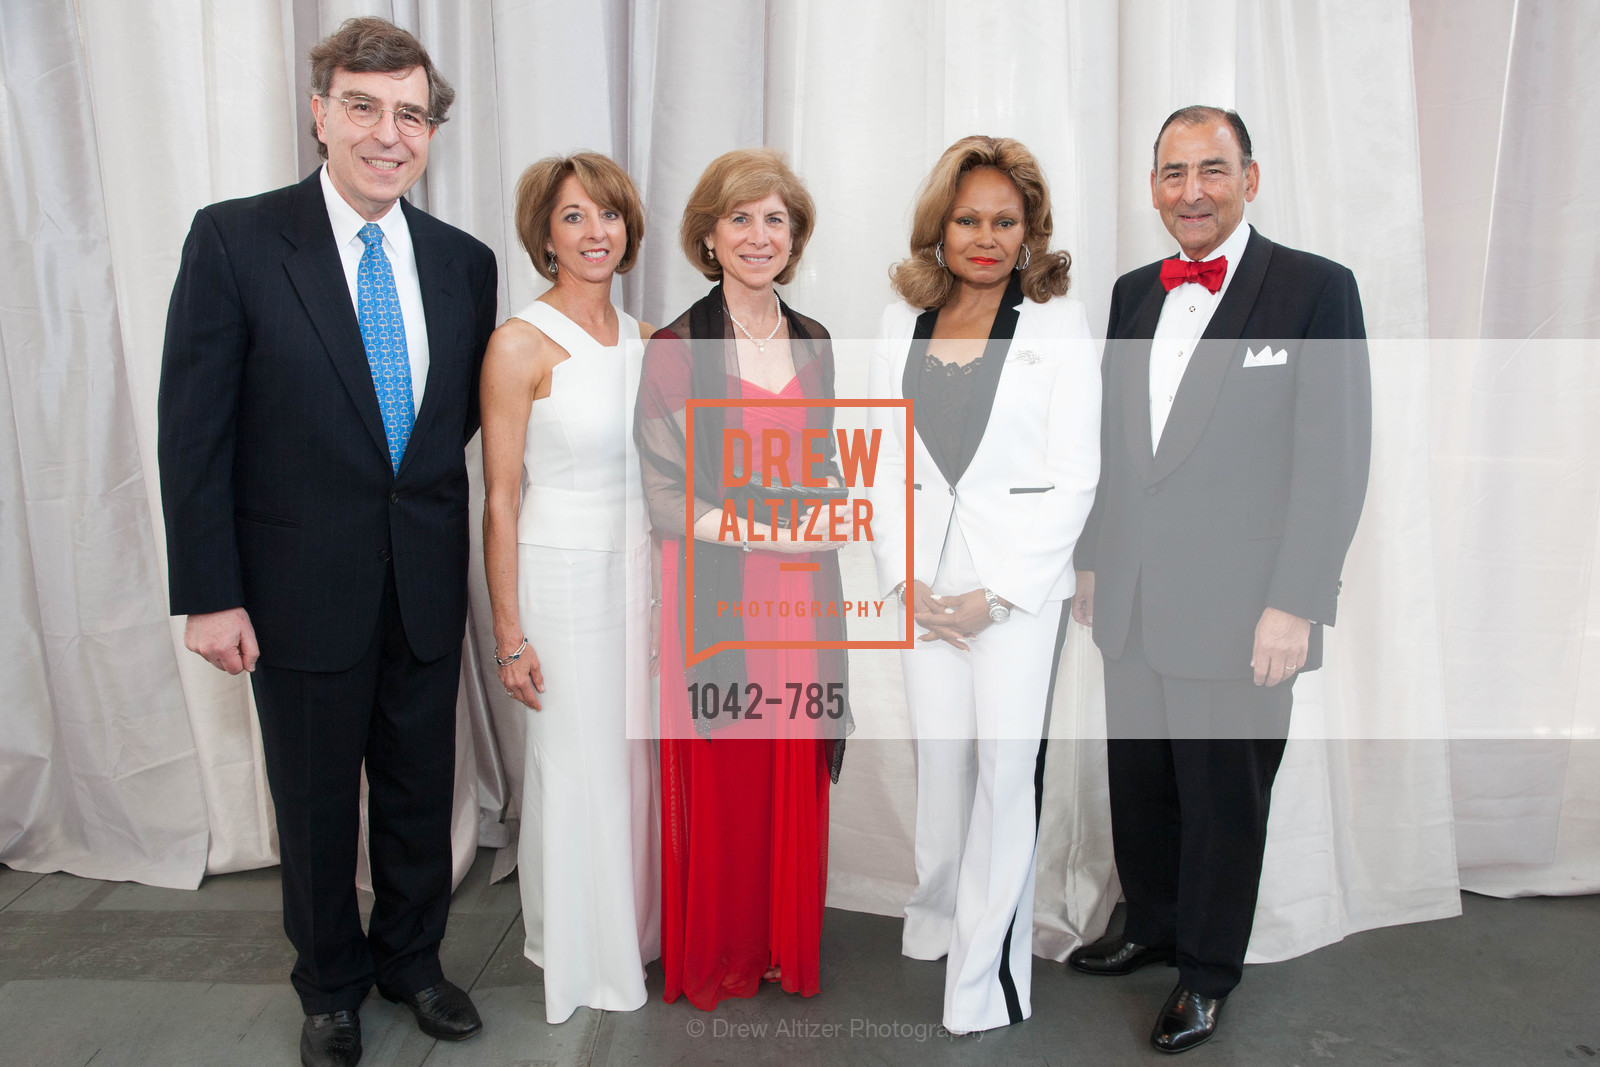 Neal Litvack, Teresa Briggs, Gail McGovern, Janice Bryant Howroyd, Alexander Mehran, 2015 RED CROSS Gala, US, April 11th, 2015,Drew Altizer, Drew Altizer Photography, full-service agency, private events, San Francisco photographer, photographer california